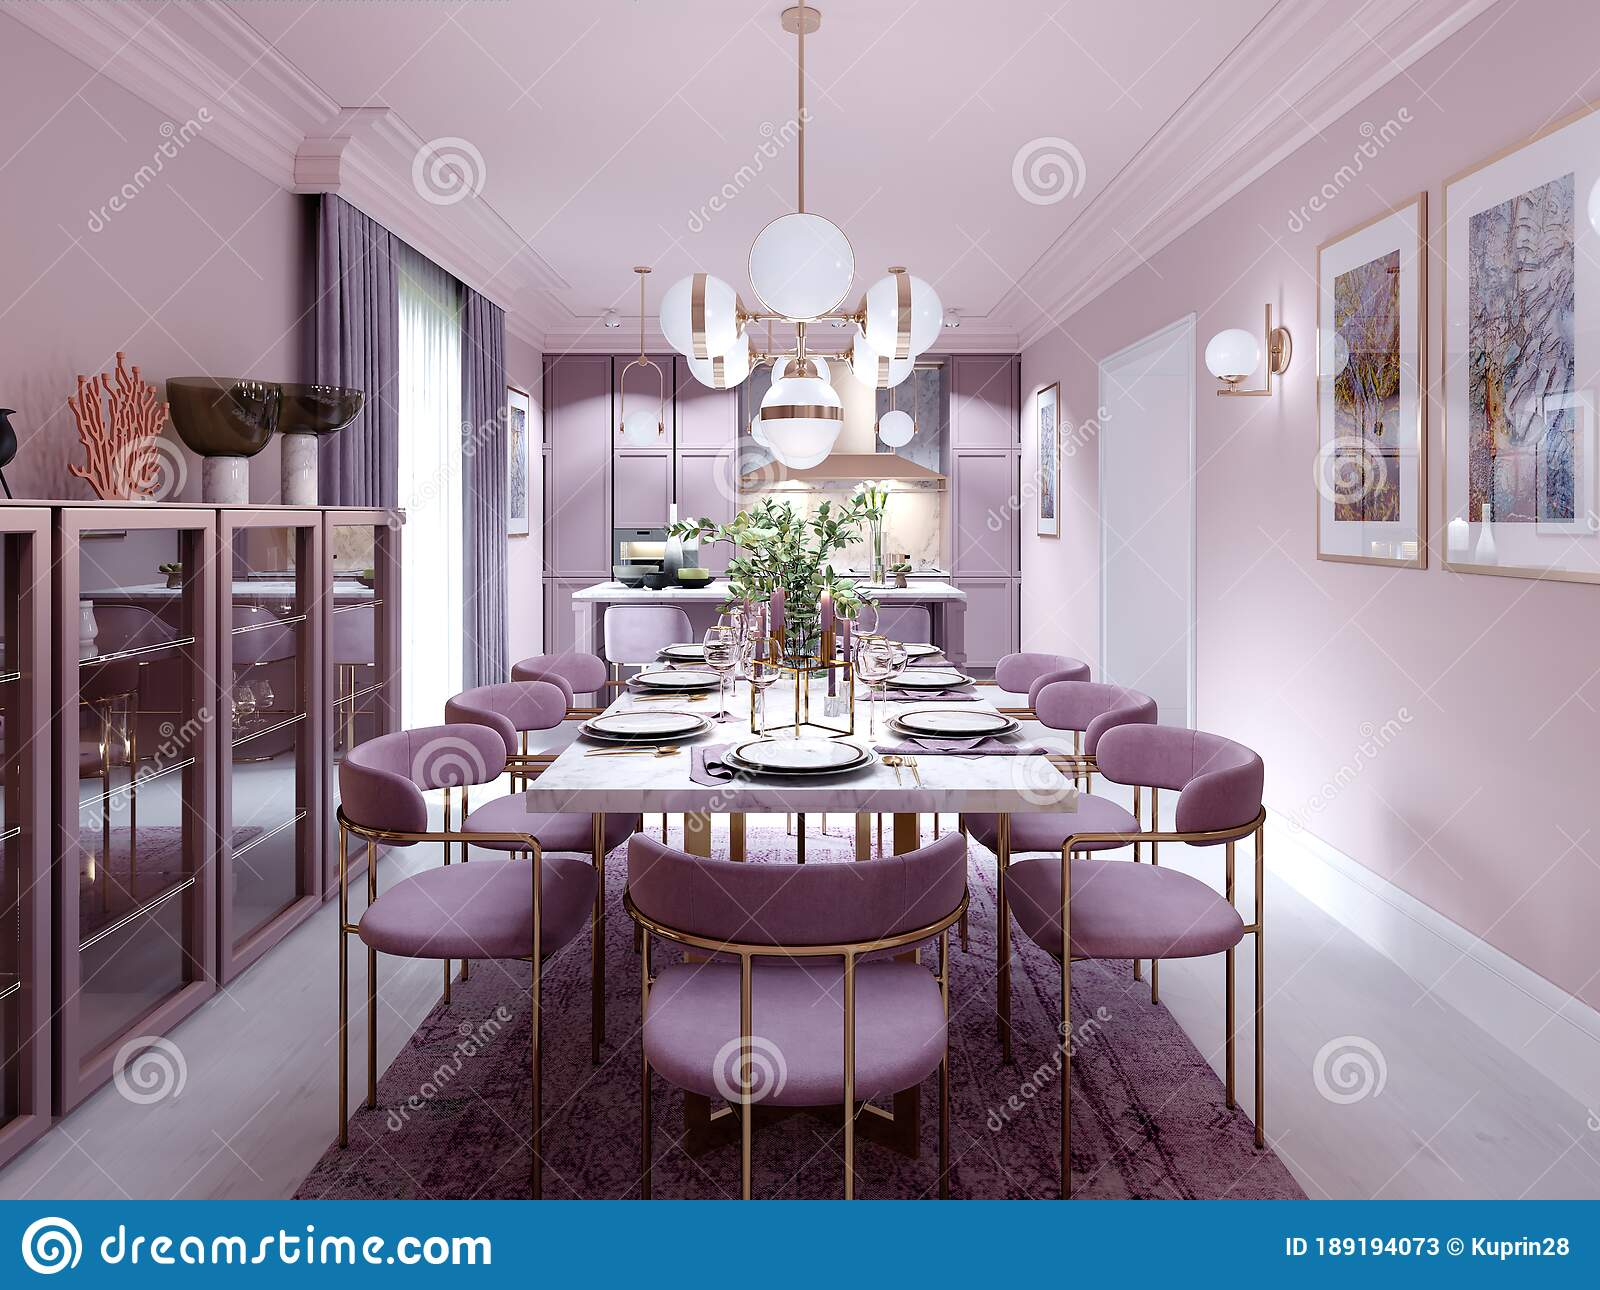 Lilac Color Dining Room In Trendy Art Deco Style With Modern Furniture Served Table And Chairs Stock Illustration Illustration Of Inspiration Kitchen 189194073